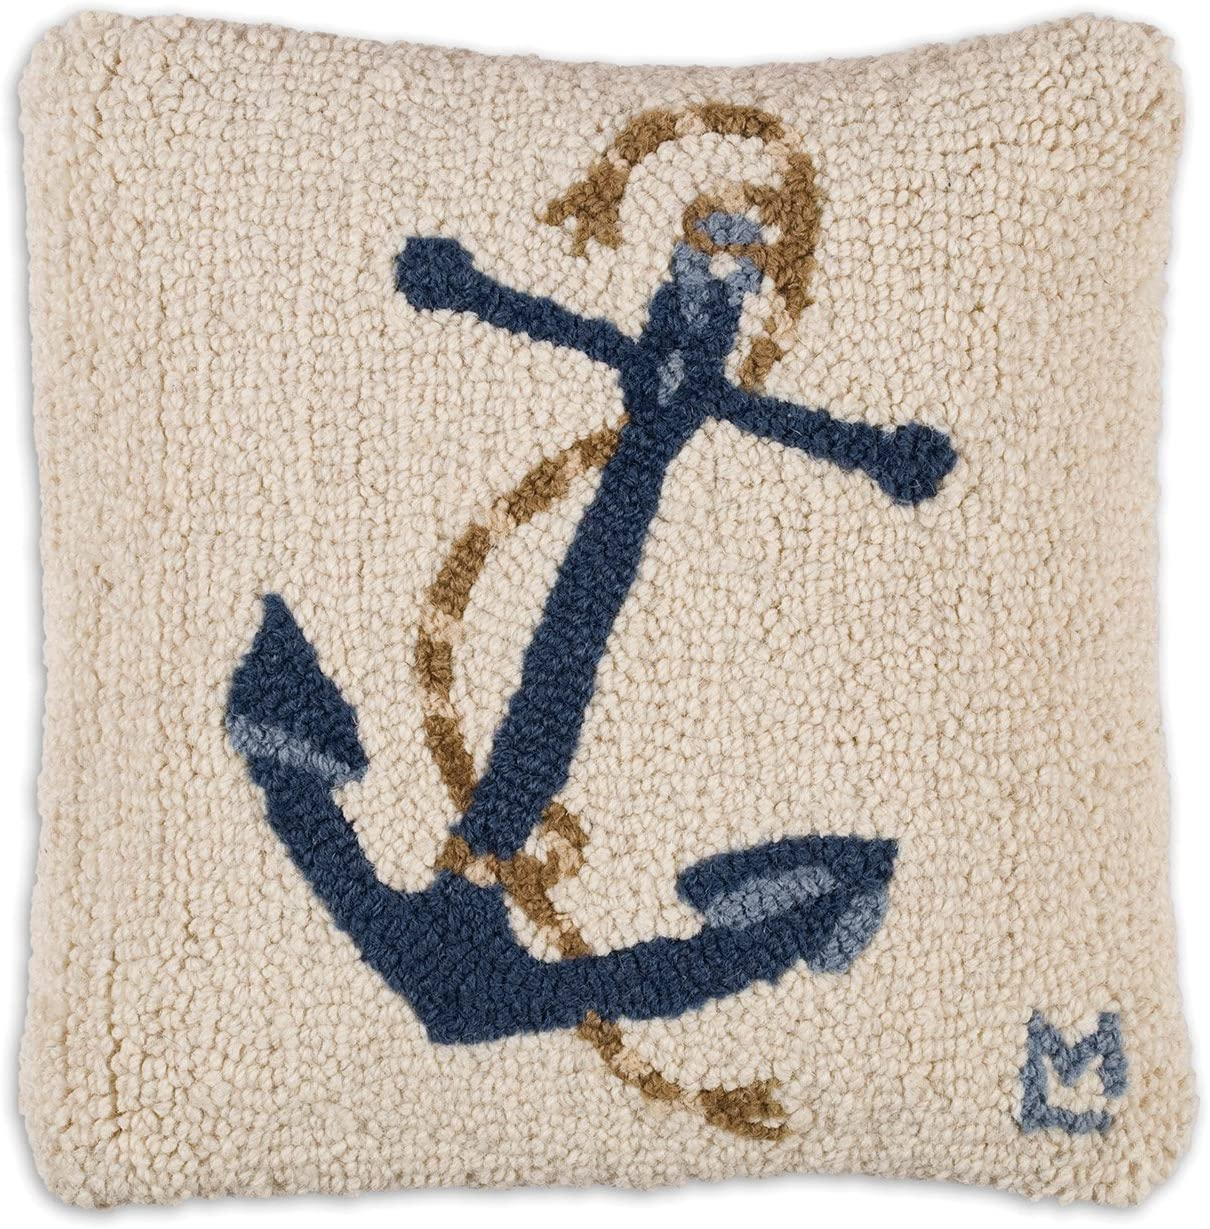 Chandler 4 Corners Artist-Designed Blue Anchor Hand-Hooked Wool Decorative Throw Pillow 14 x 14